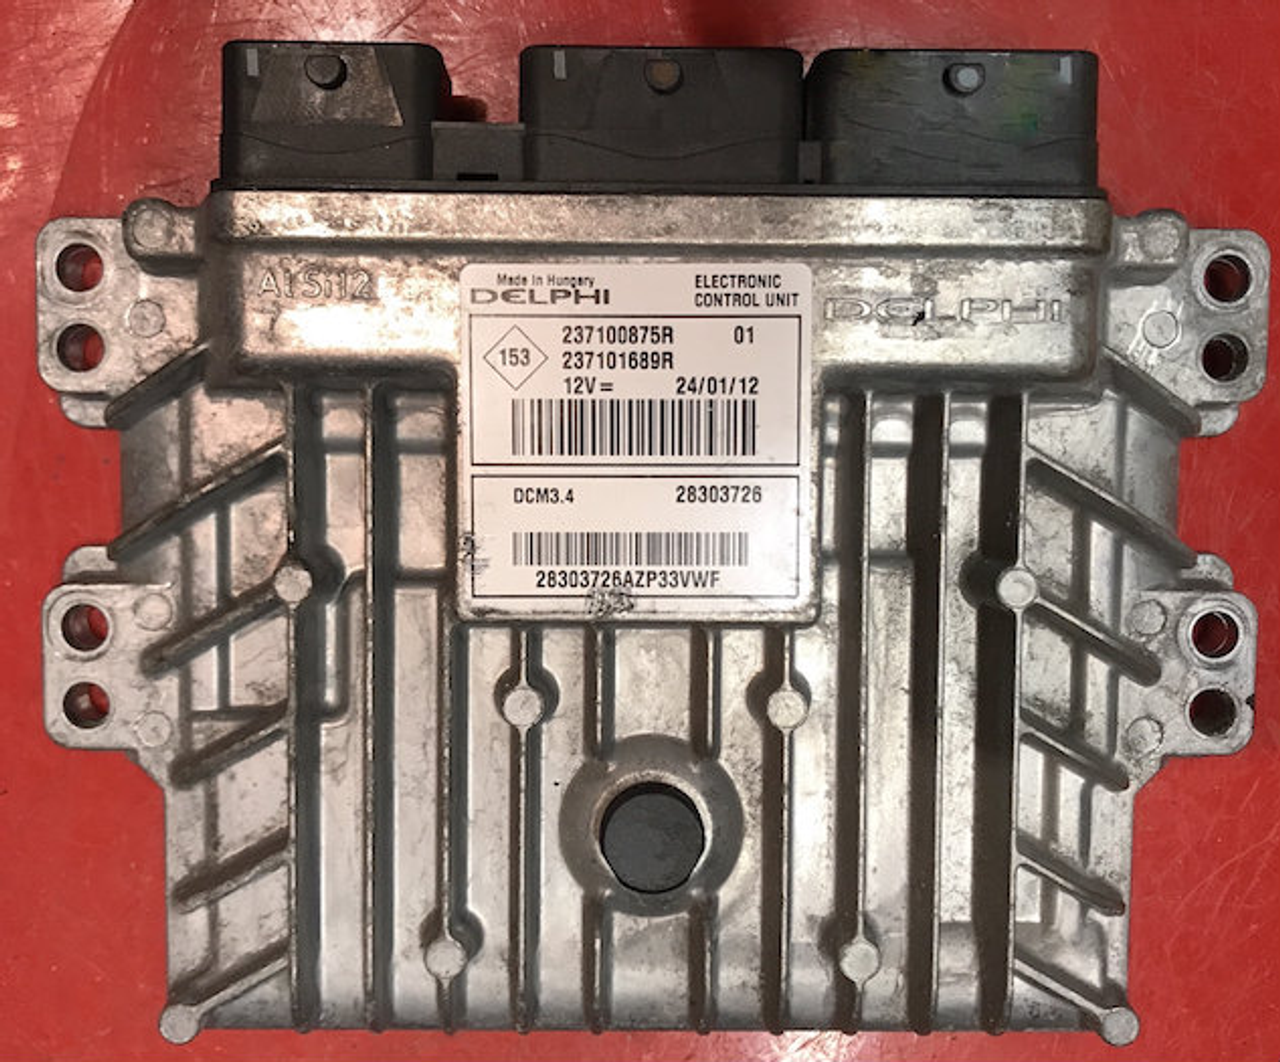 Locked Delphi Engine ECU, Nissan NV200, 237100875R, 237101689R, 28303726,  DCM3 4